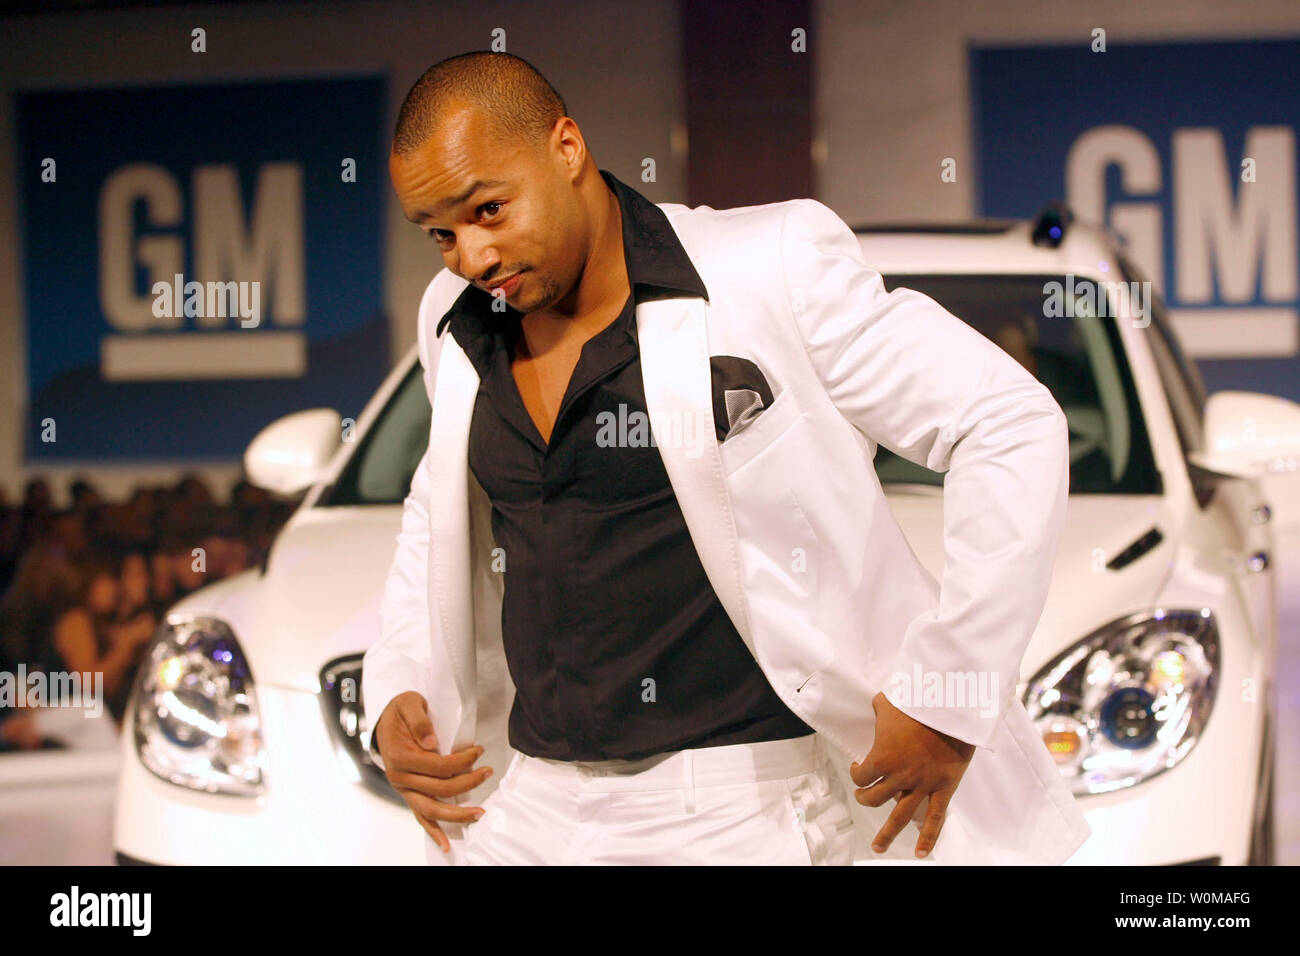 Donald Faison, dressed in Dolce & Gabbana, walks the runway with a 2007 Buick Enclave at the GM TEN fashion event in Los Angeles on February 20, 2007. The GM TEN event brings together celebrities, fashion and General Motors vehicles from around the world. (UPI Photo/General Motors) - Stock Image